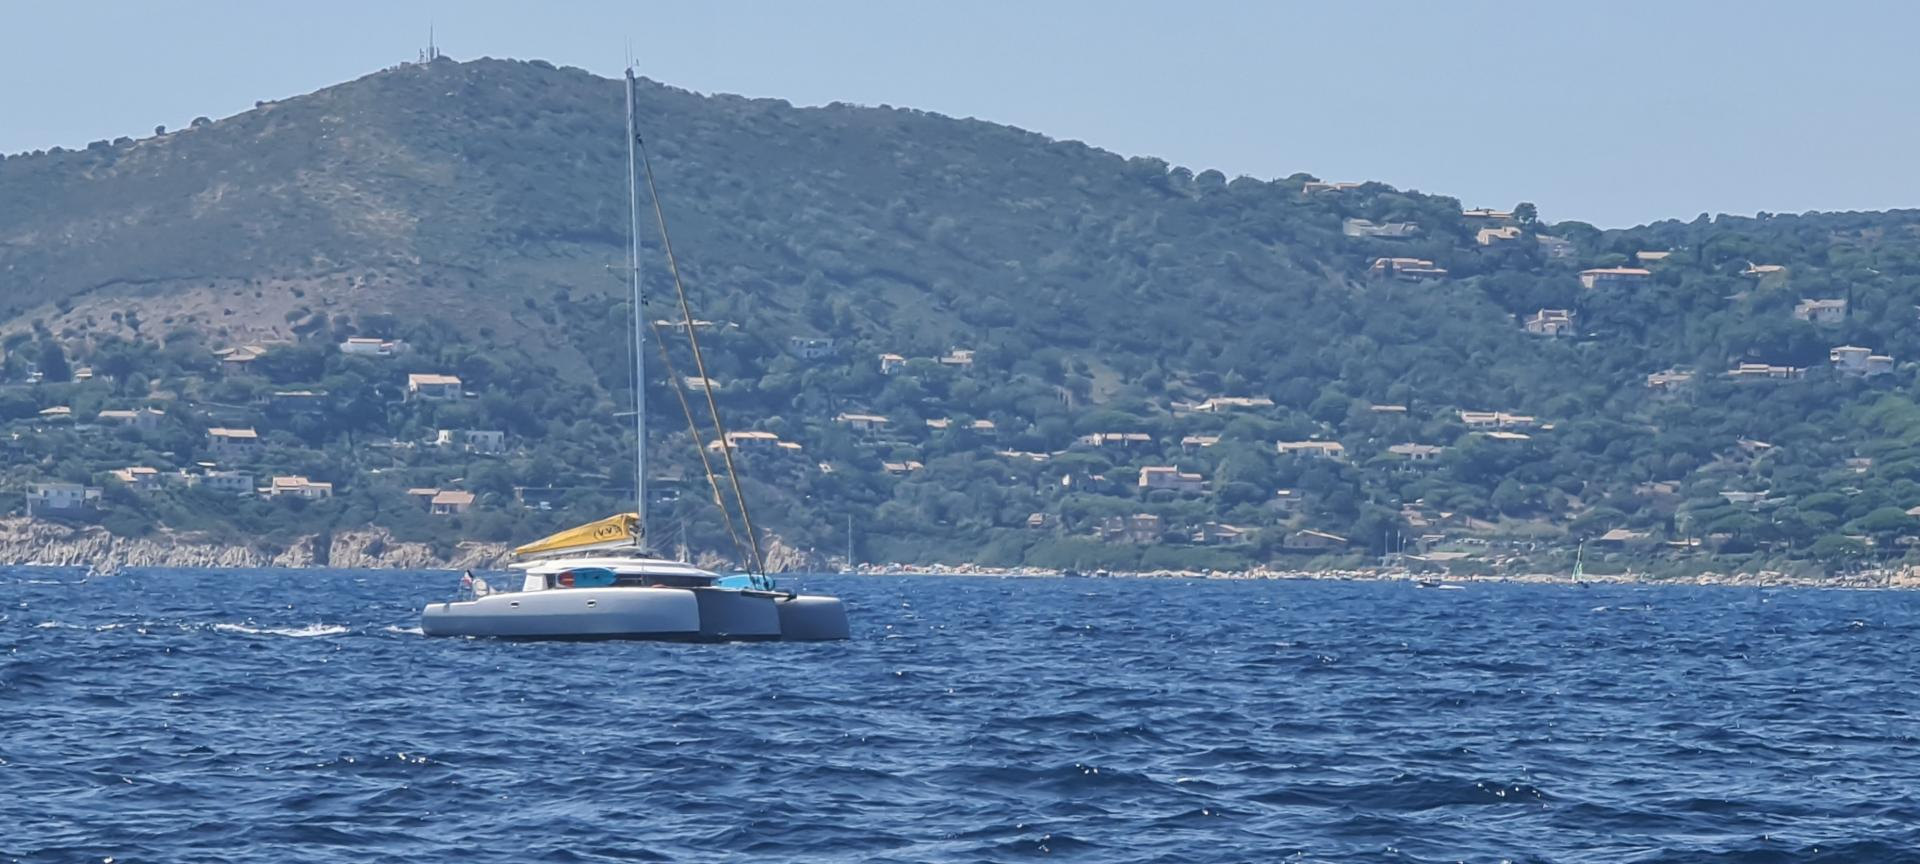 Neel 45 trimaran on french riviera